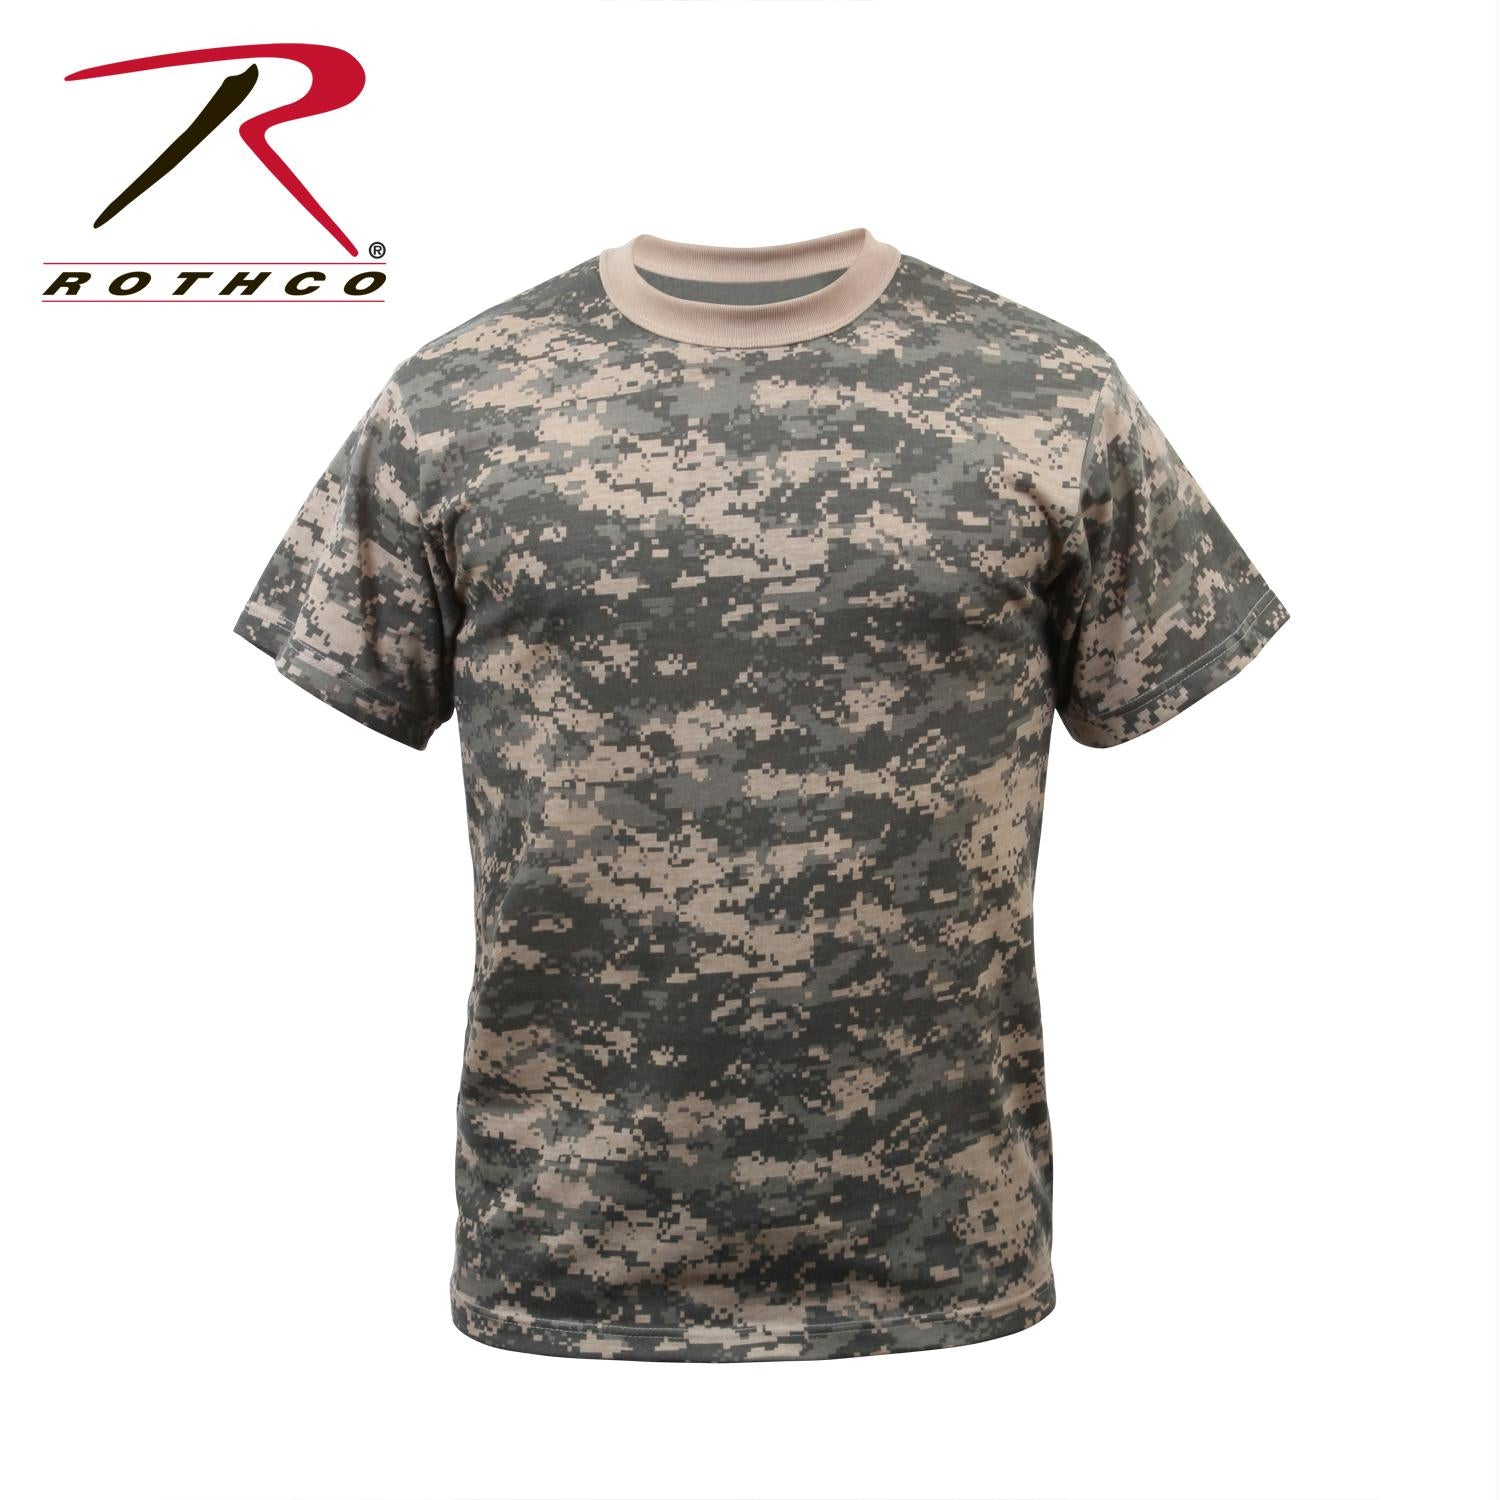 Rothco Kids Digital Camo T-Shirt - ACU Digital Camo / M